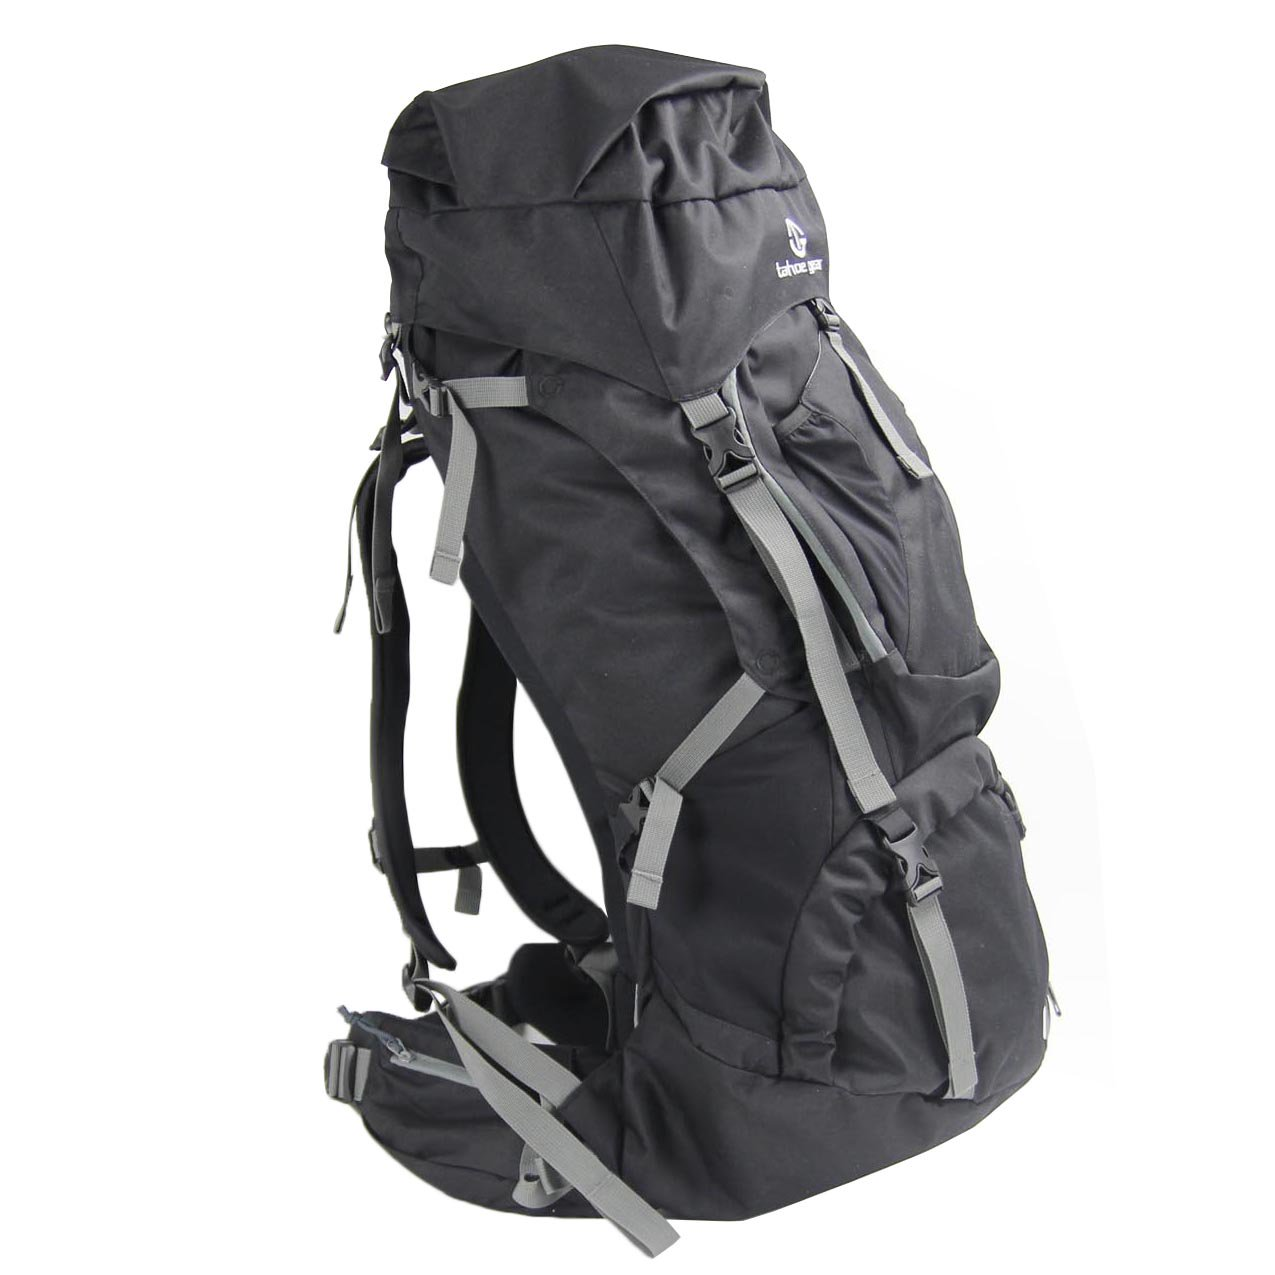 Tahoe Gear Fairbanks 75L Premium Internal Frame Hiking Backpack ...